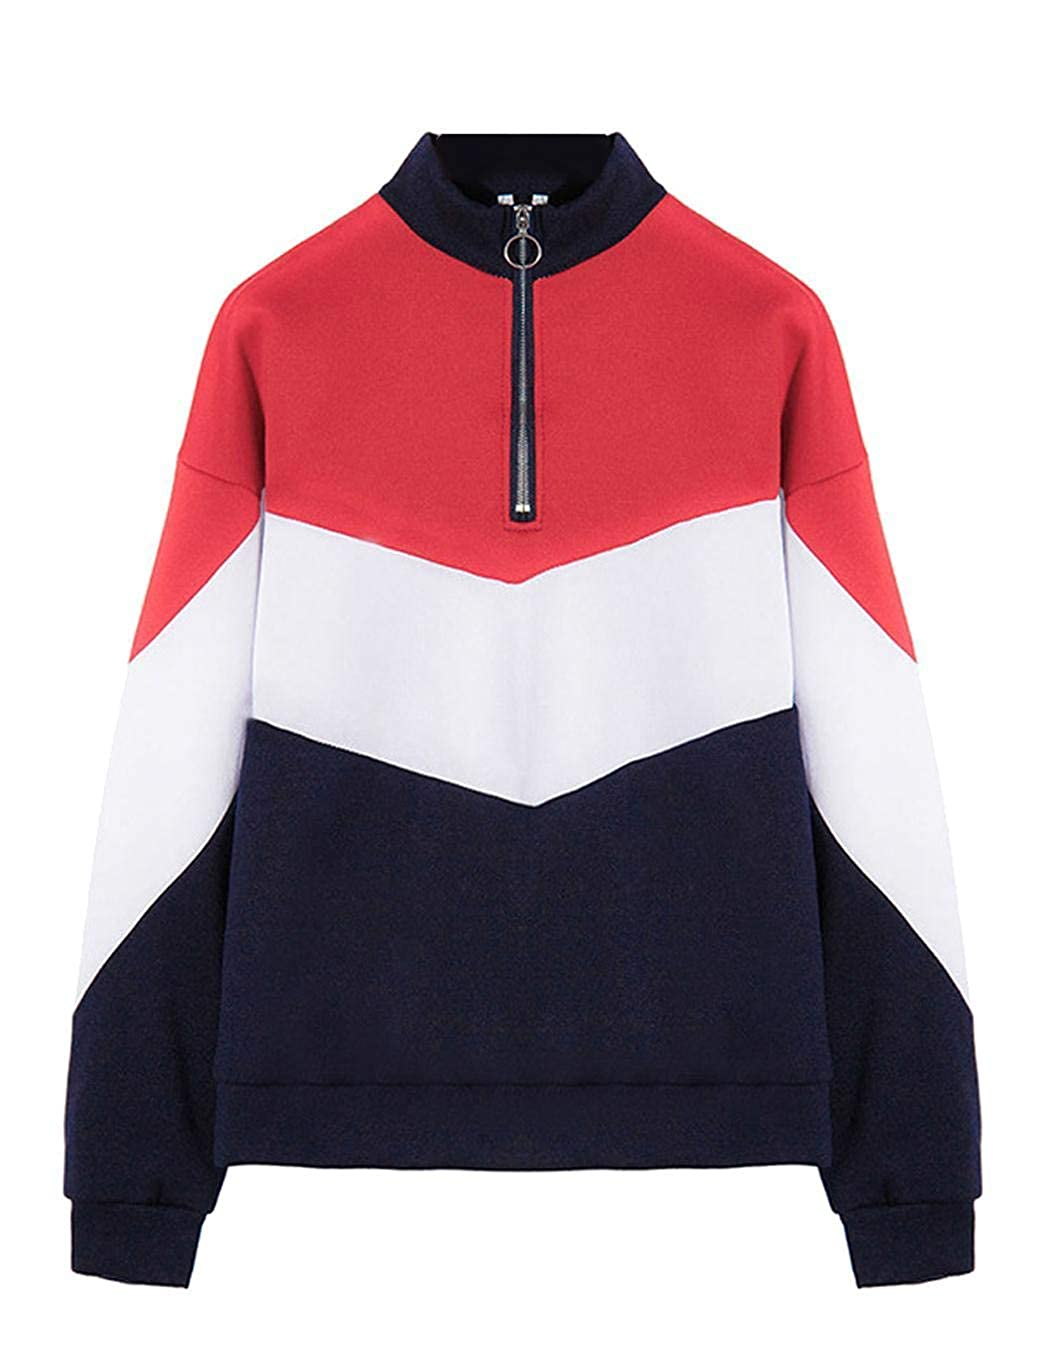 Lioder Women Casual Contrast Color Patchwork Long Sleeve Pullover Sweatshirt Top Fashion Hoodies